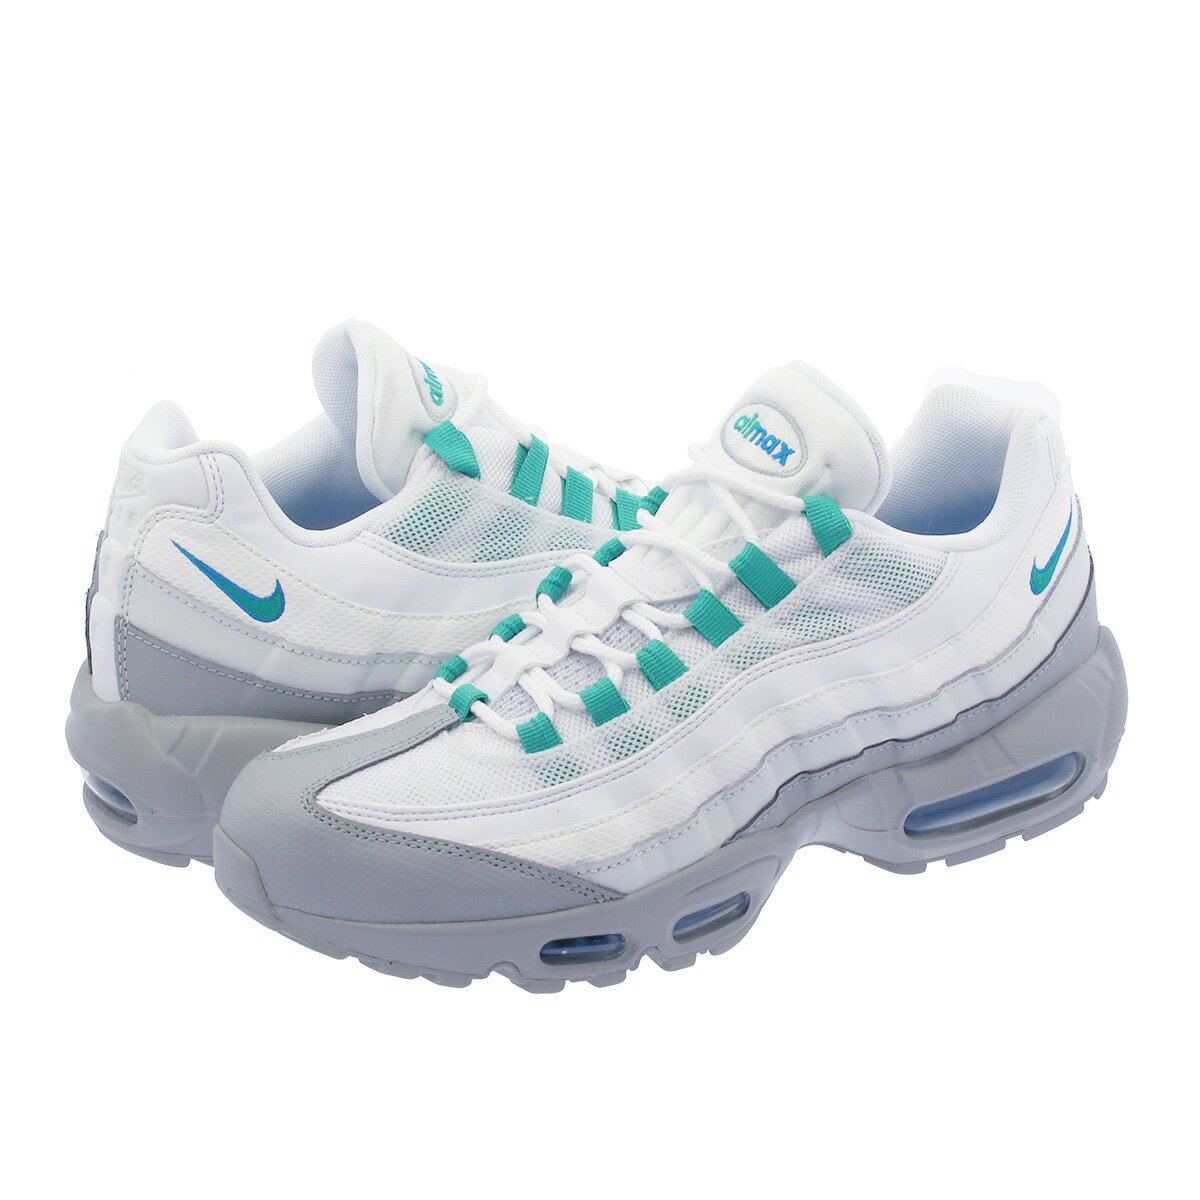 NIKE AIR MAX 95 ESSENTIAL ナイキ エア マックス 95 エッセンシャル LIGHT PUMICE/CLEAR EMERALD/WHITE 749766-032